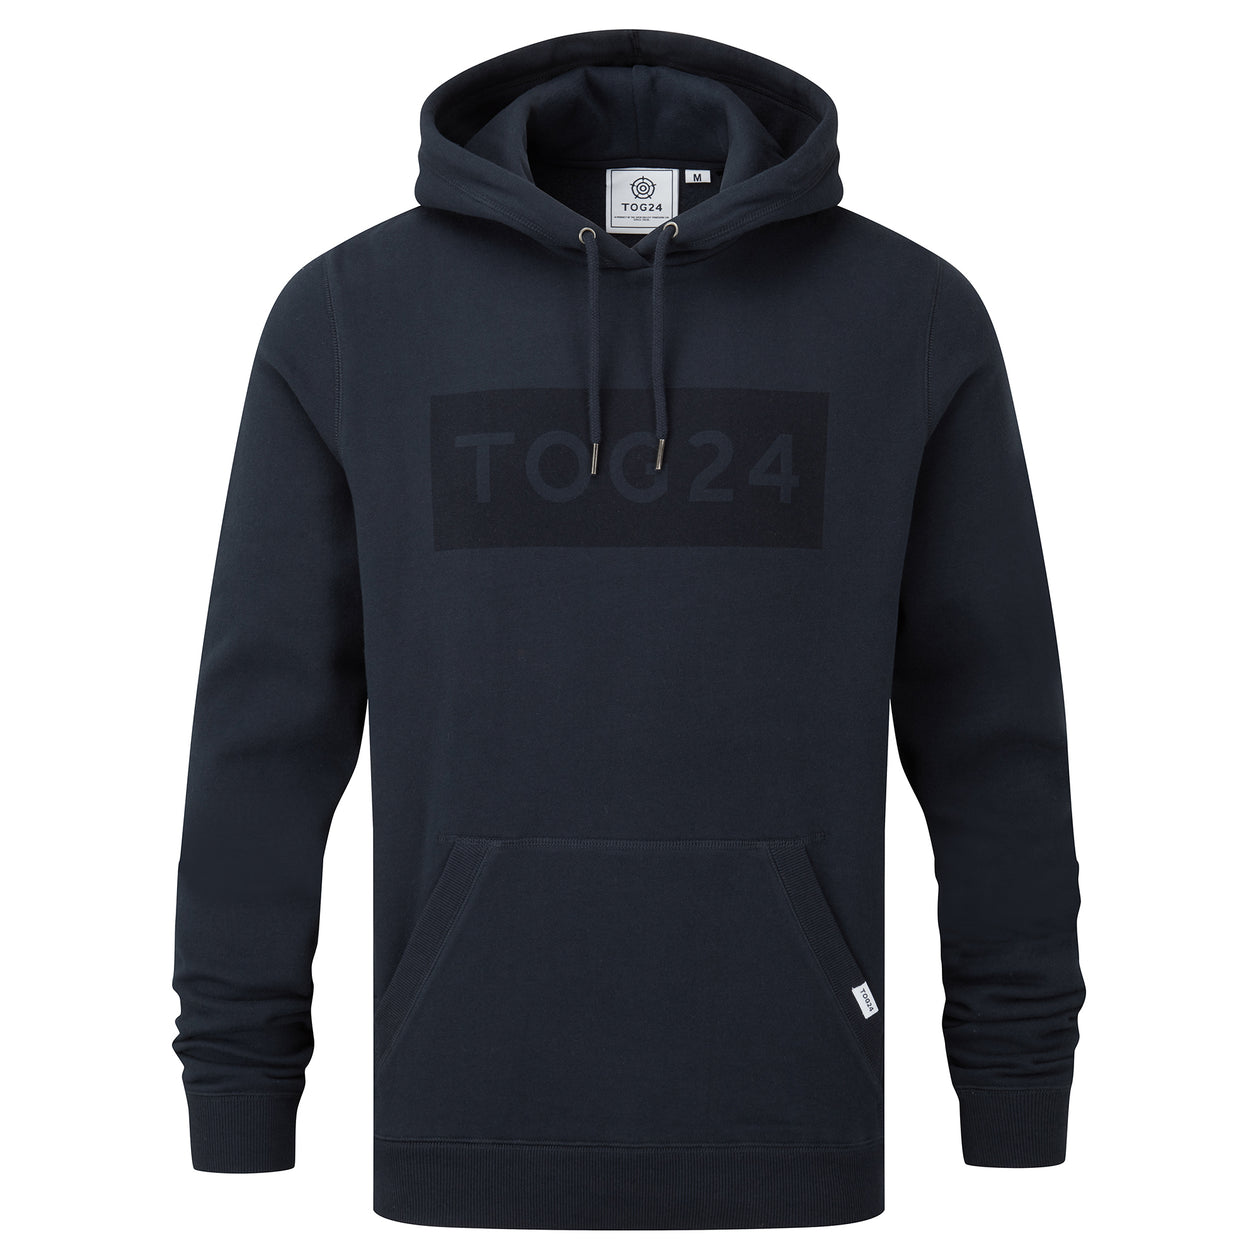 Sampson Mens Hoody - Dark Indigo image 4